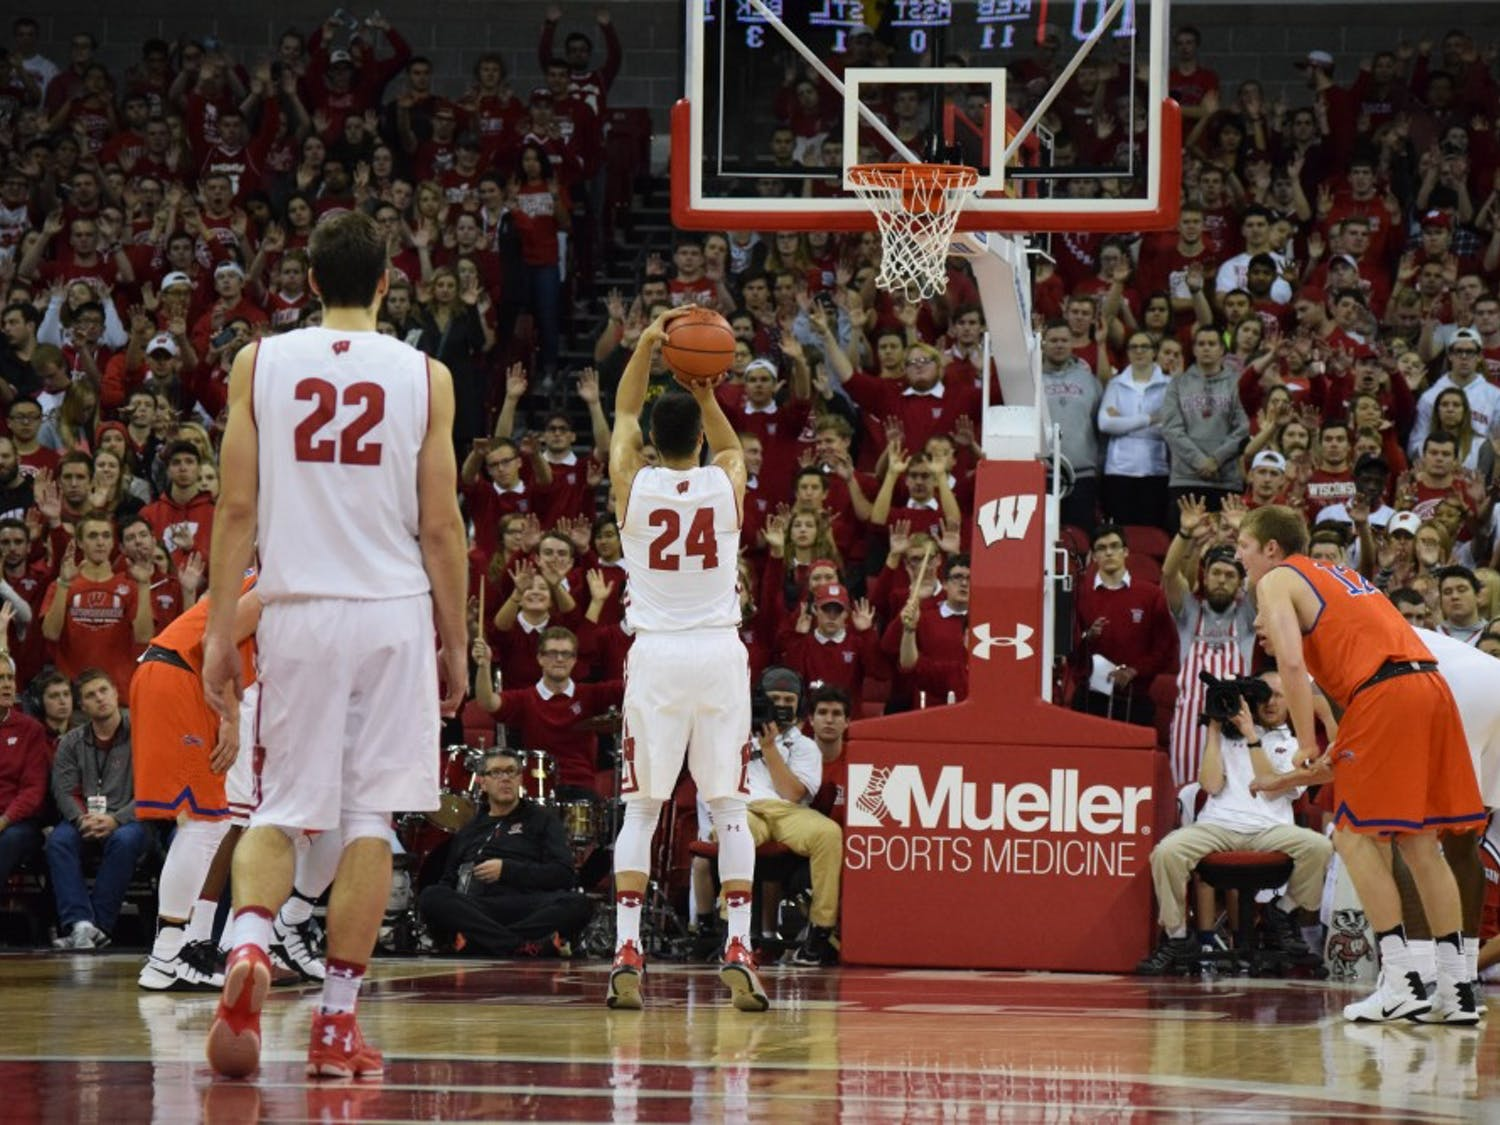 Bronson Koenig was one of a few Badgers who had success at the free throw line against Florida, but Ethan Happ's and Nigel Hayes' struggles from the charity stripe hurt them when it mattered most.